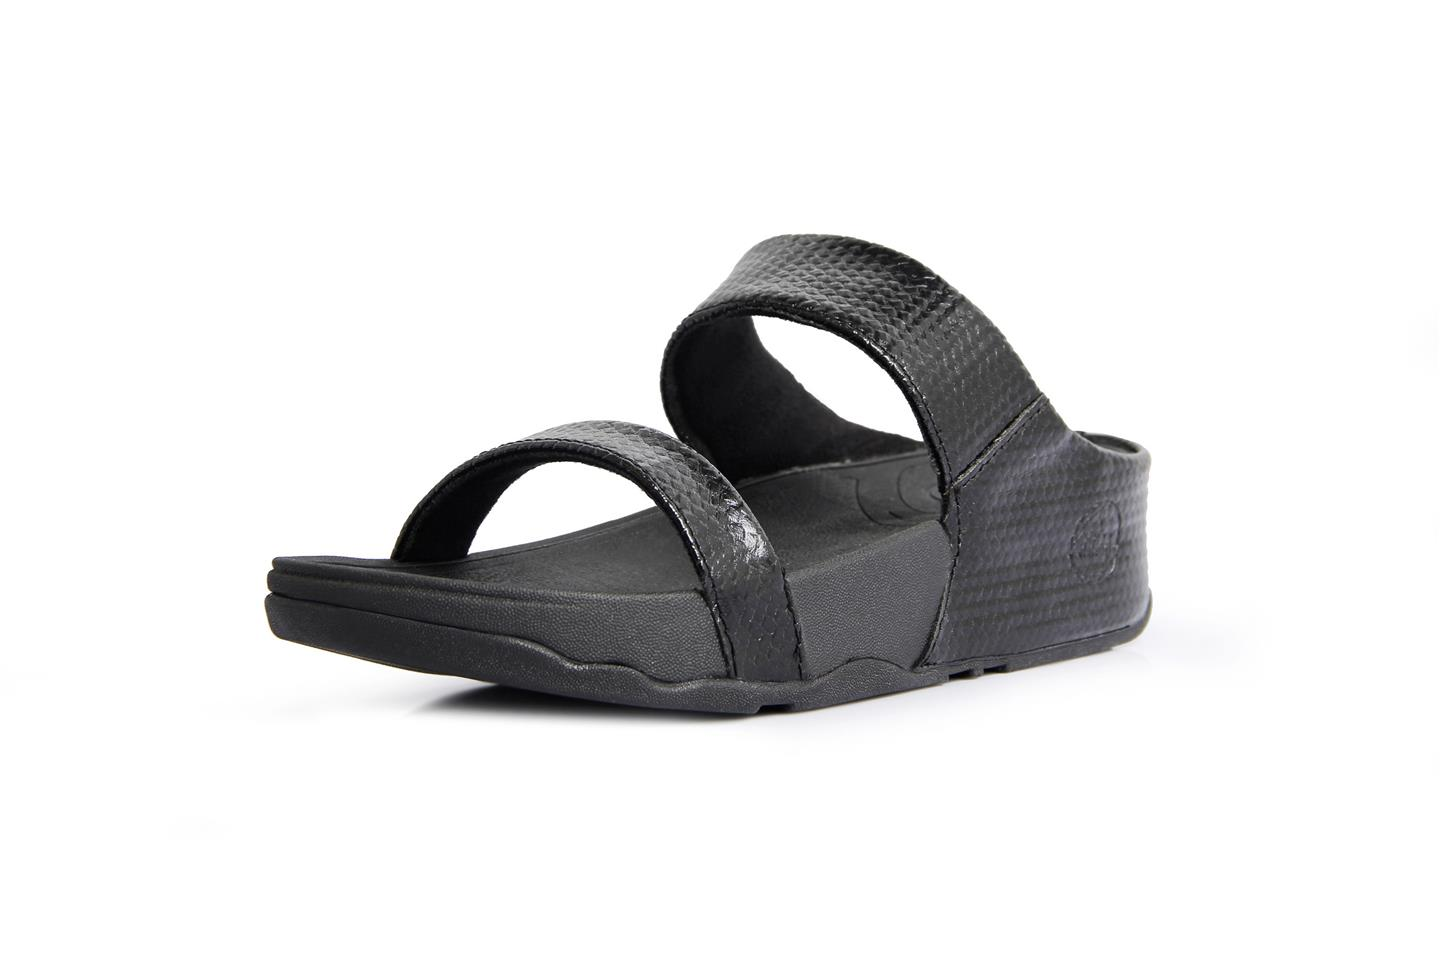 Fitflop Lulu Slide Sandal Women Sandals Shoes